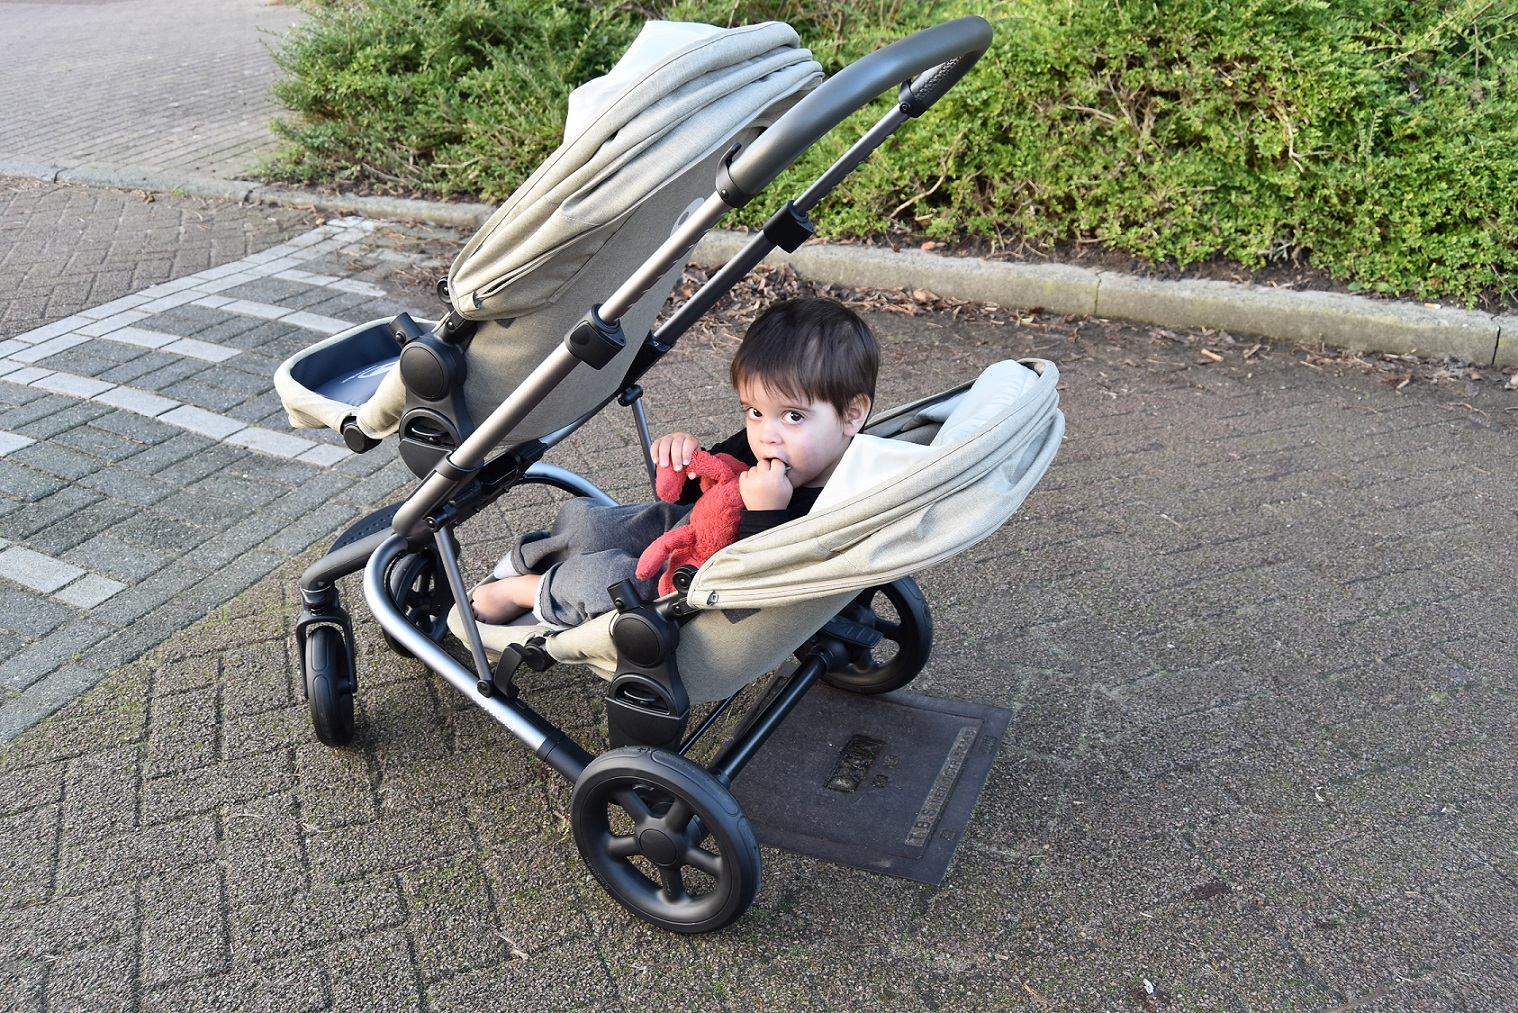 Kinderwagen Easywalker Duo Easywalker Harvey Review Van Single Naar Duo Wagen Moeders Nu